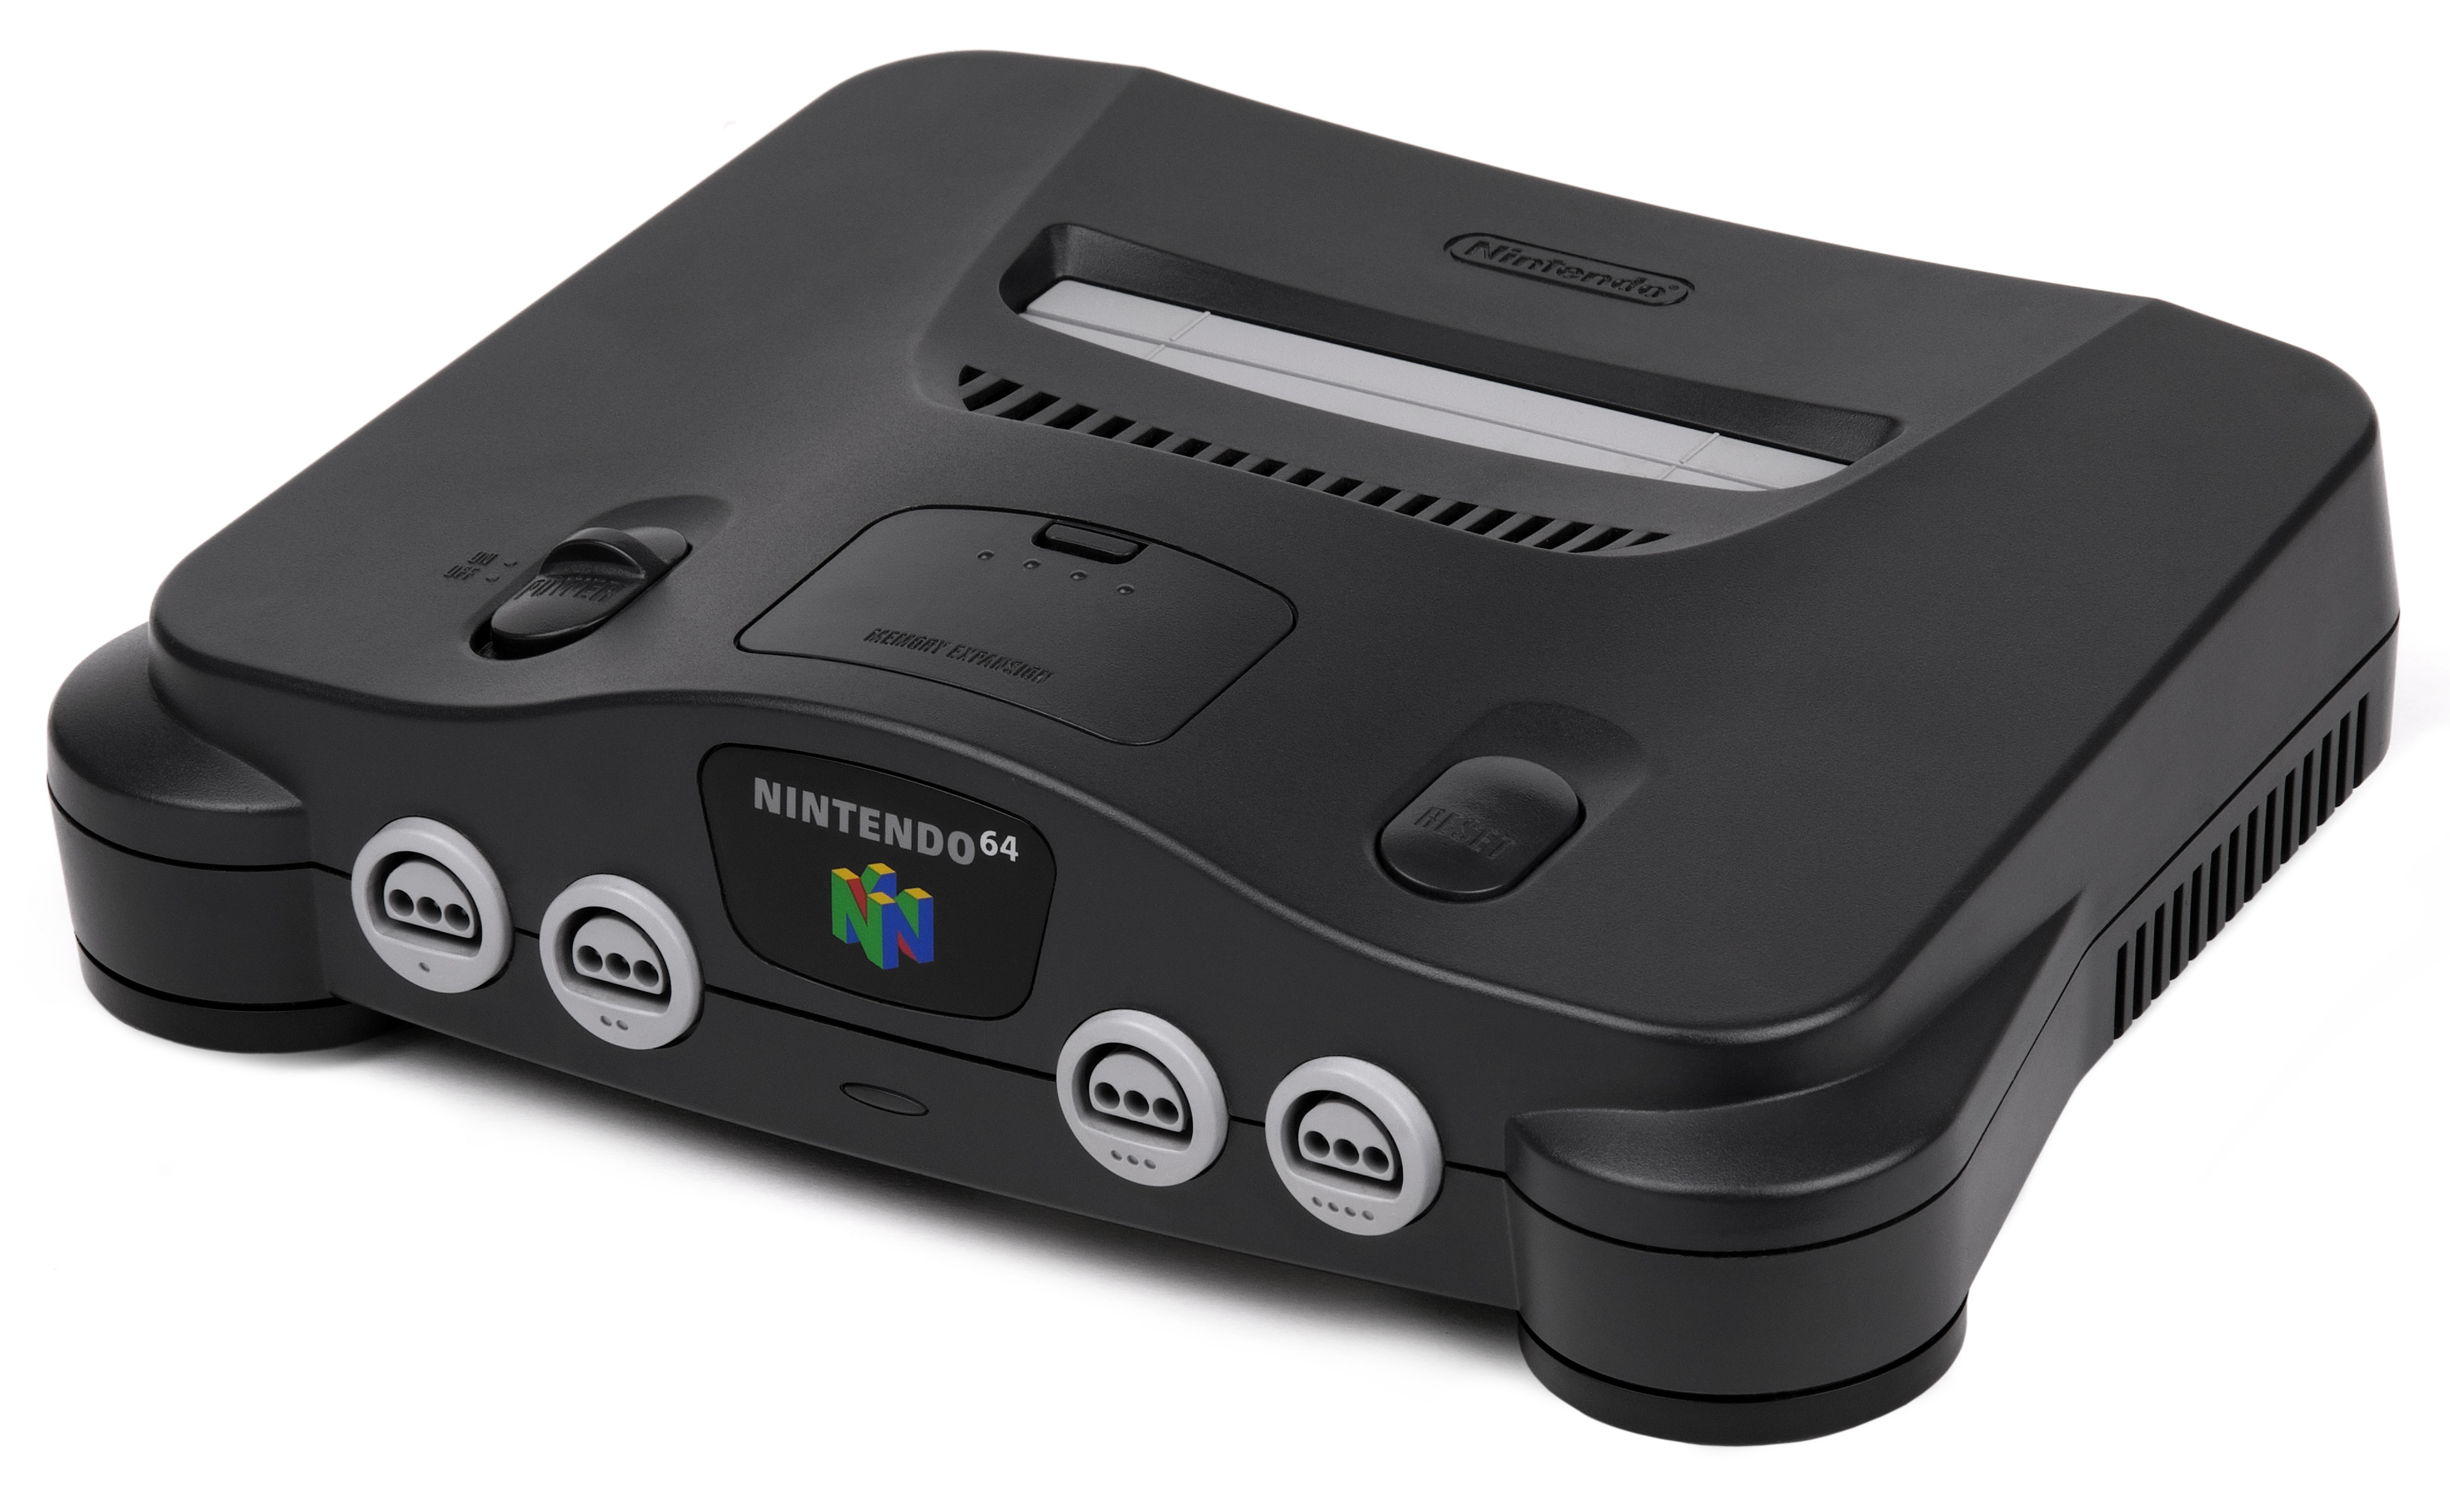 Image 0 of Nintendo 64 N64 System Video Game Console